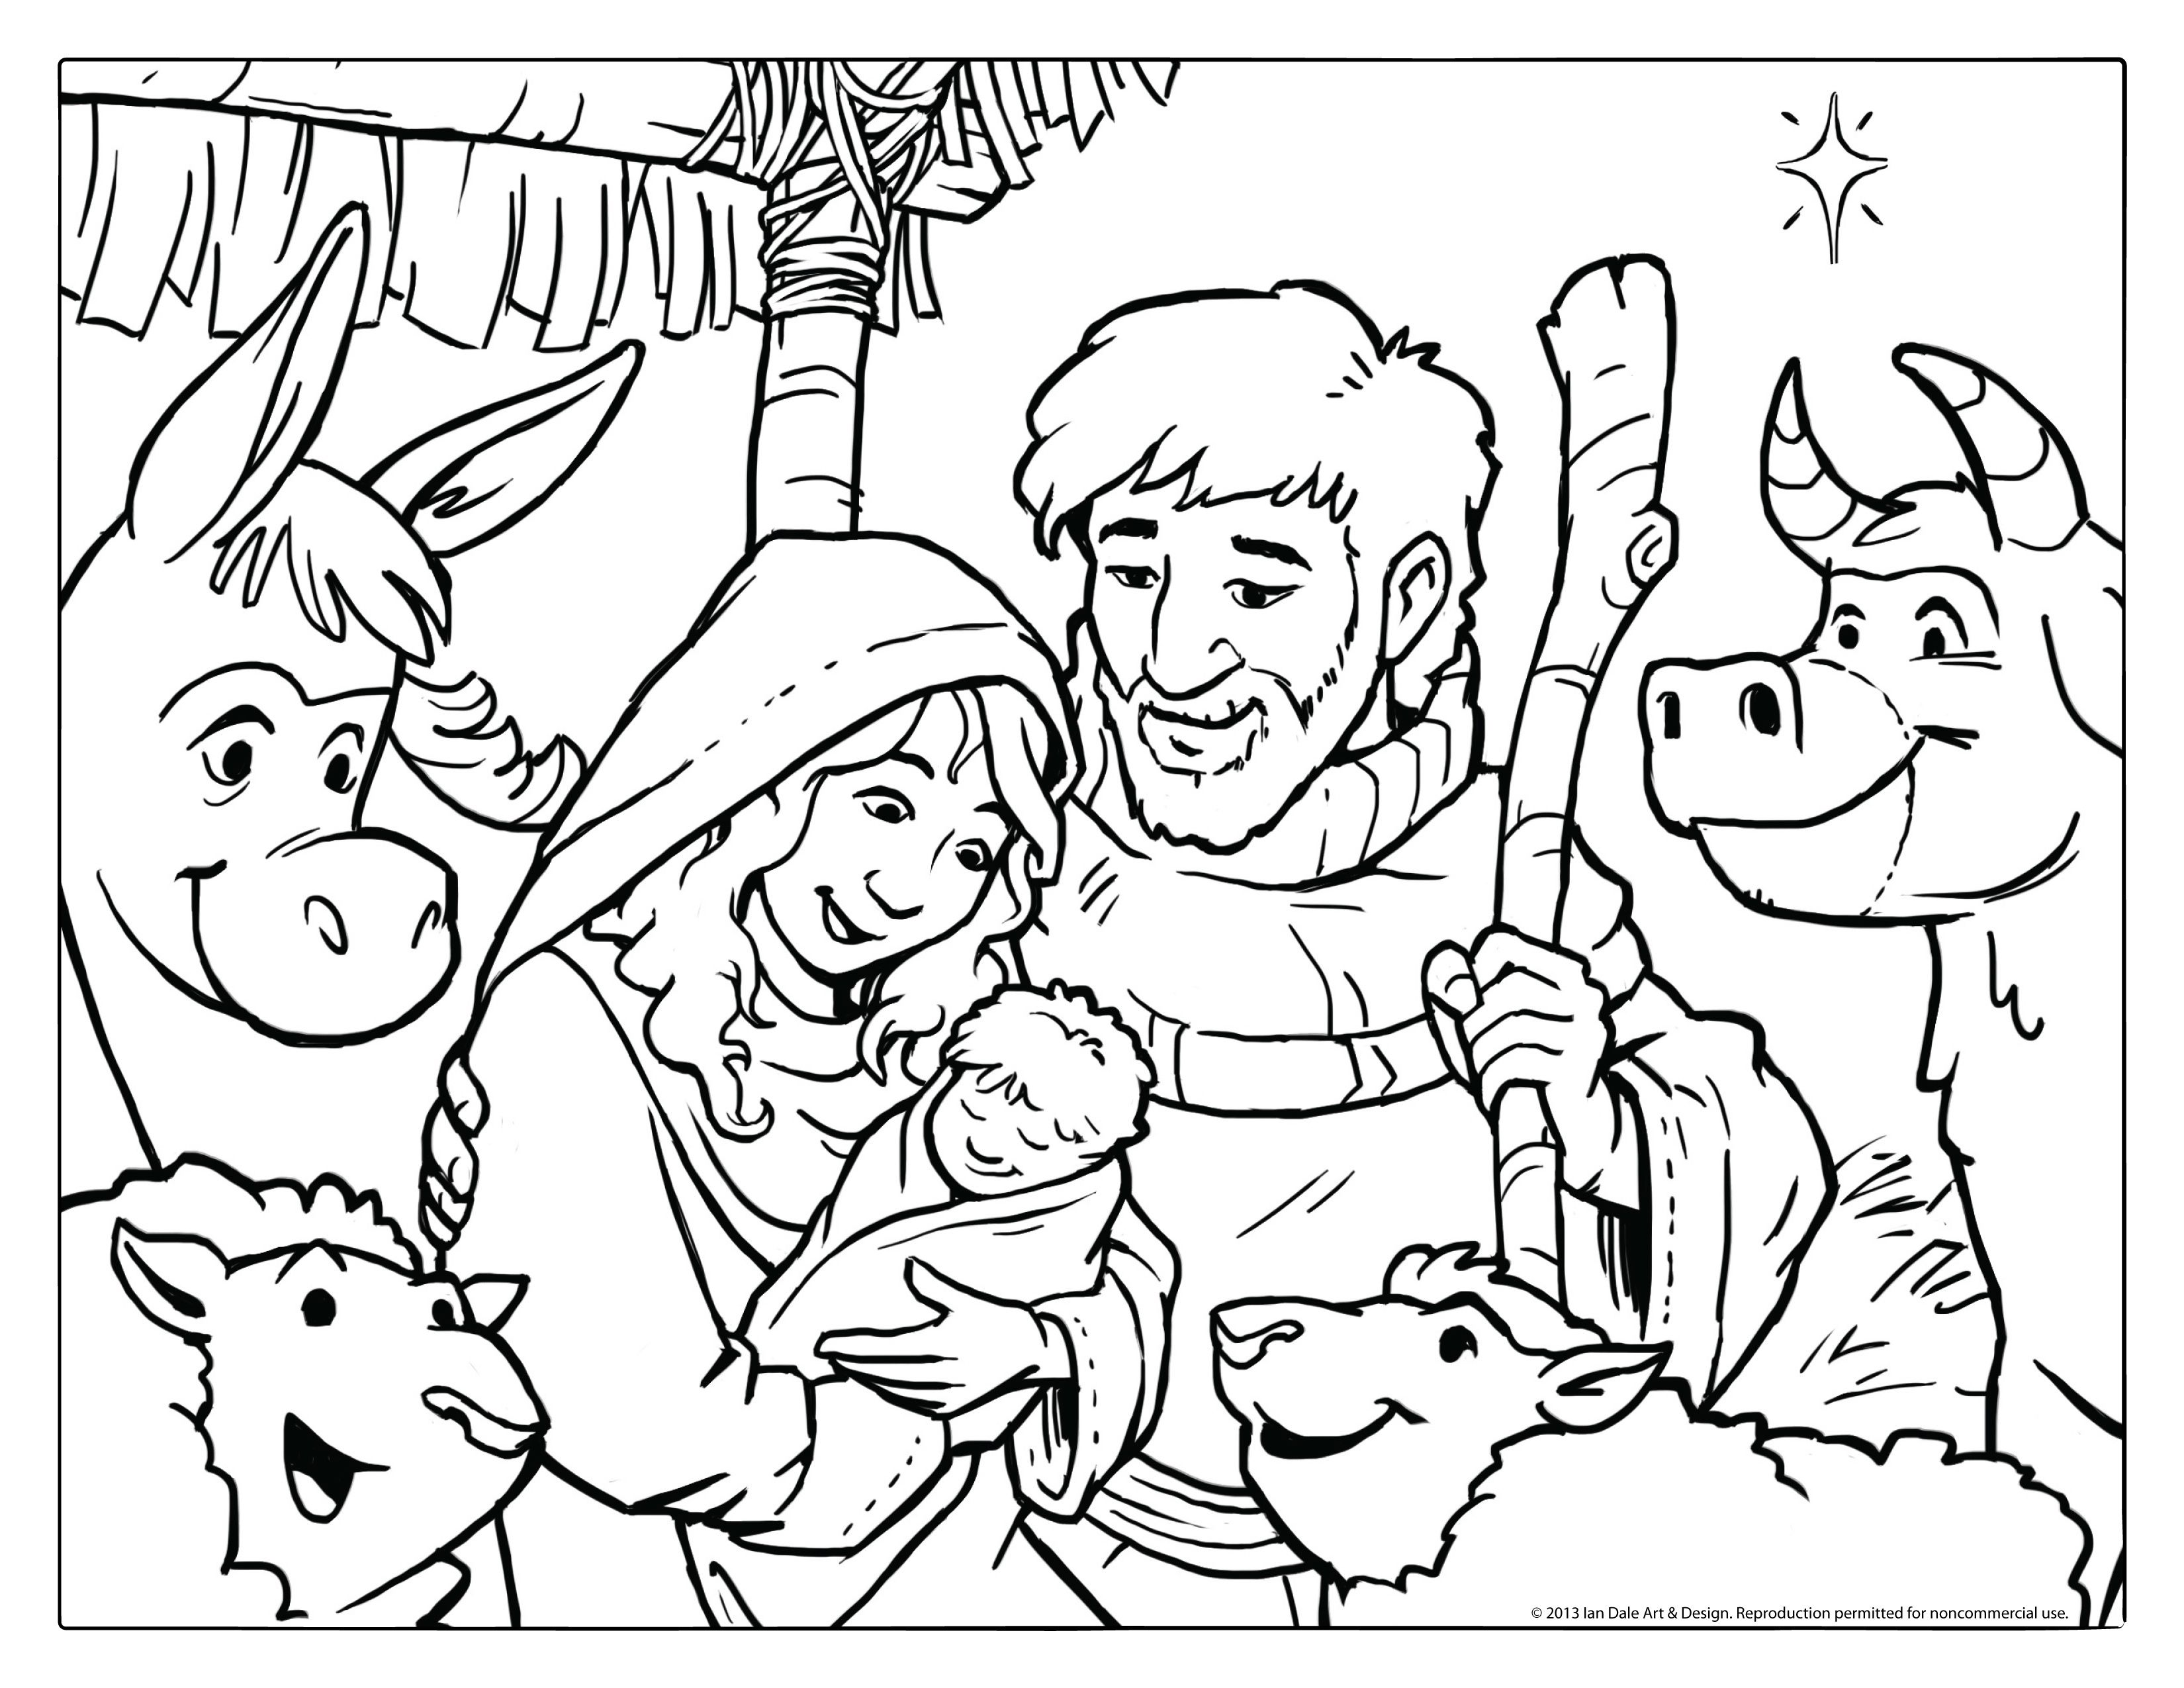 image about Free Printable Nativity Coloring Pages titled Nativity Coloring Internet pages Free of charge Printable Nativity Coloring